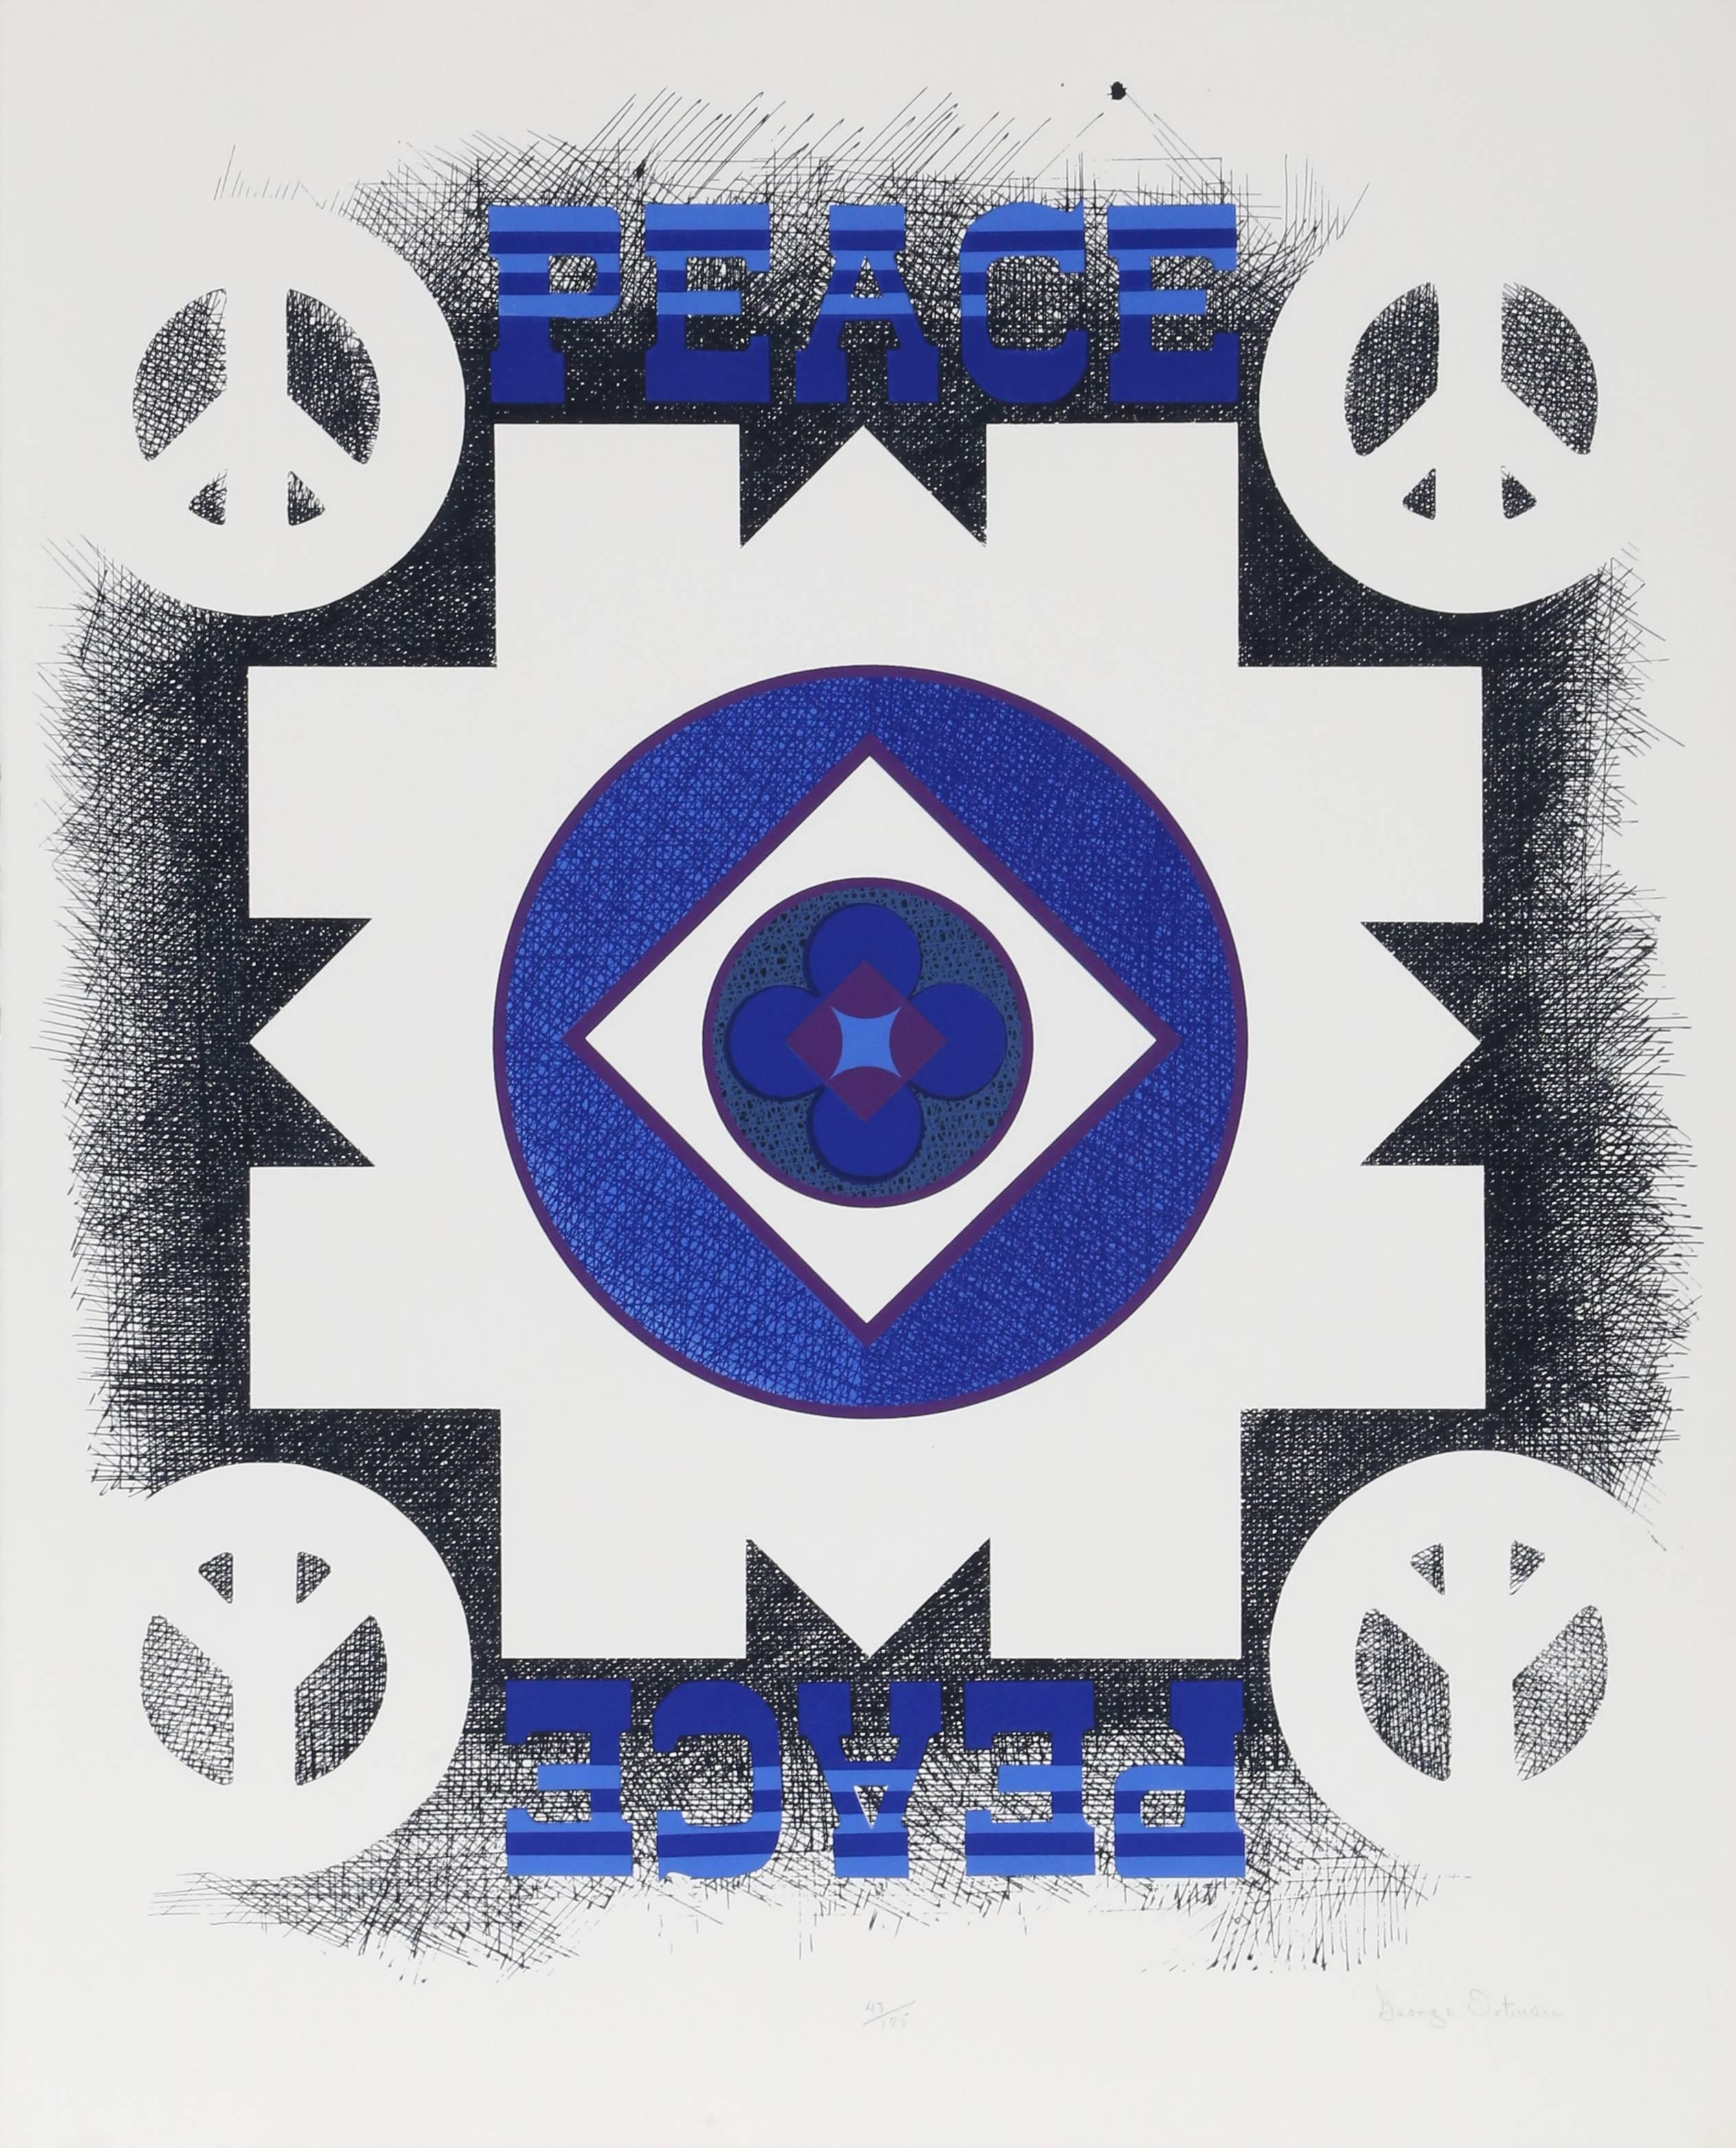 Peace, Silkscreen from the Peace Portfolio by George Ortman